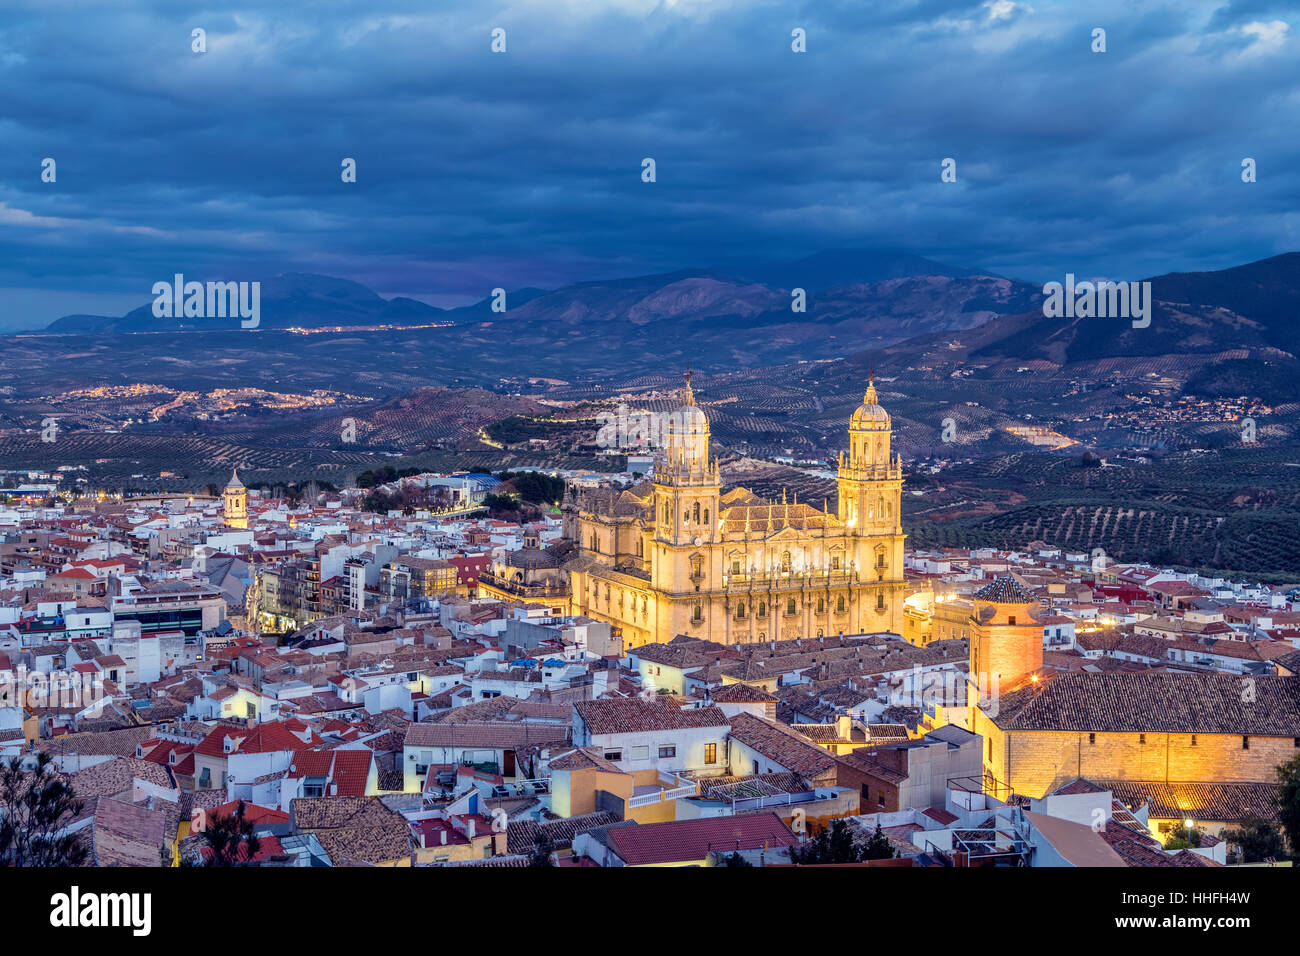 Cityscape of Jaen in the evening, Andalusia, Spain - Stock Image